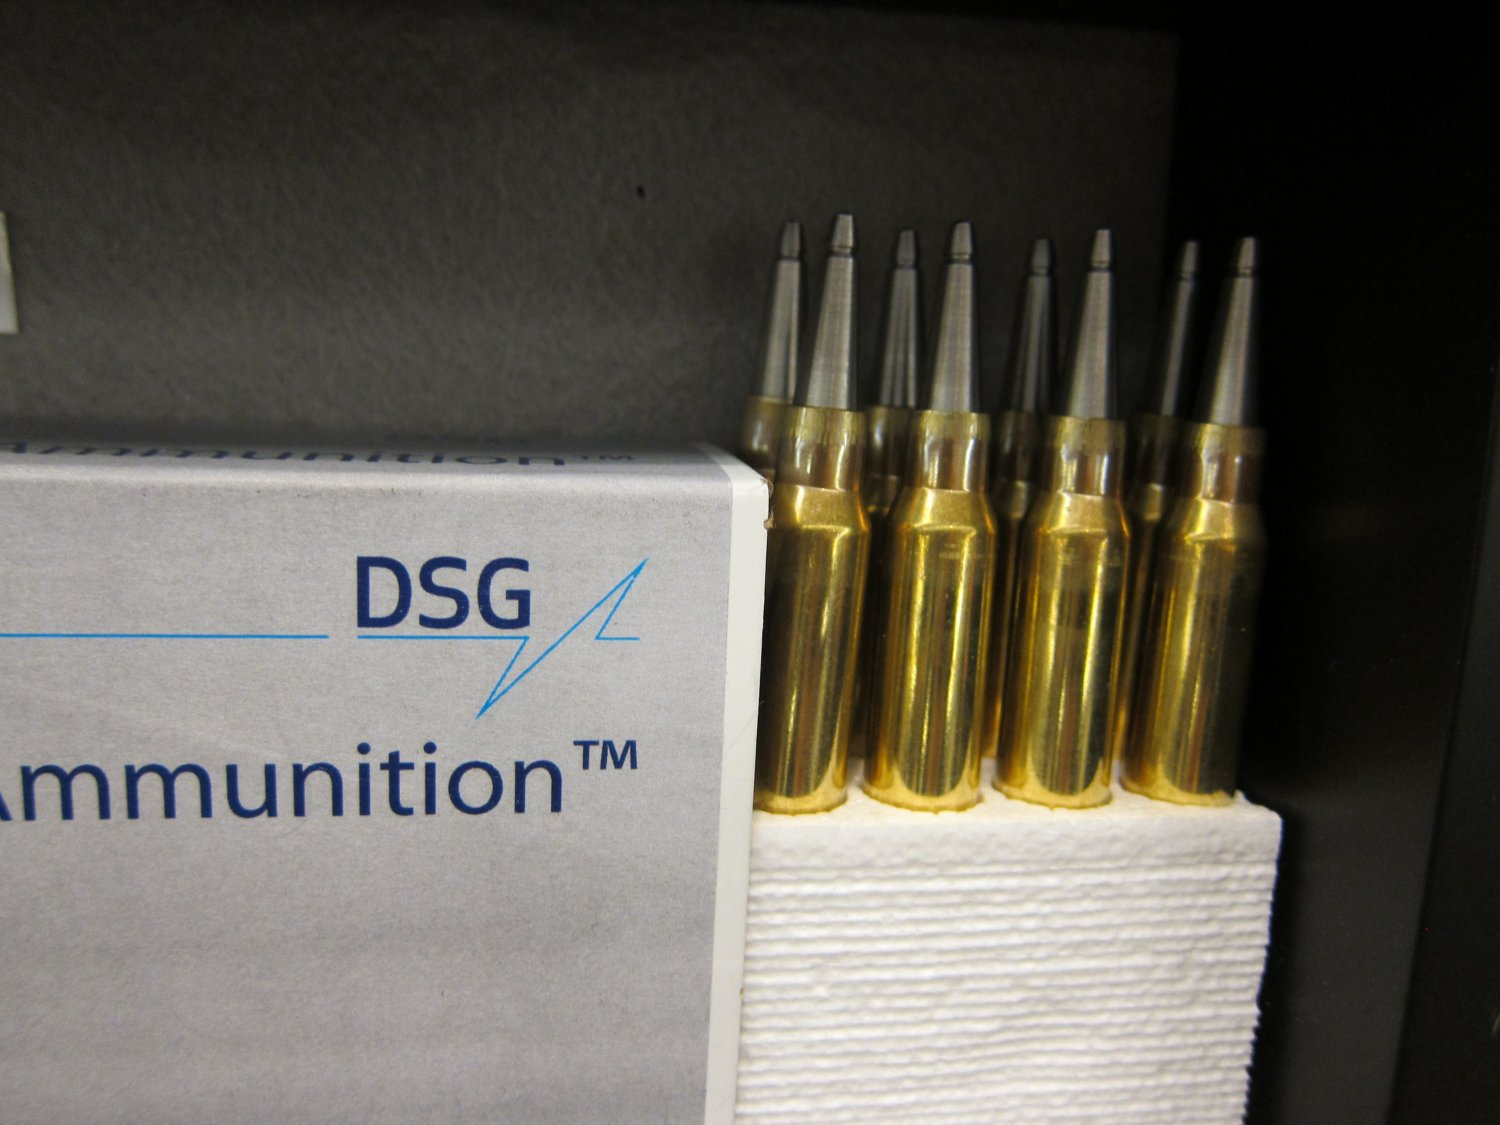 DSG_(Defence_&_Security_Group)_Multi-Environment_Ammunition_(MEA)_Dual_Core_Supercavitating_Ammunition_(Underwater_Rifle_Ammo)_Richard_Morgan_NDIA_Small_Arms_2011_DefenseReview.com_(DR)_13